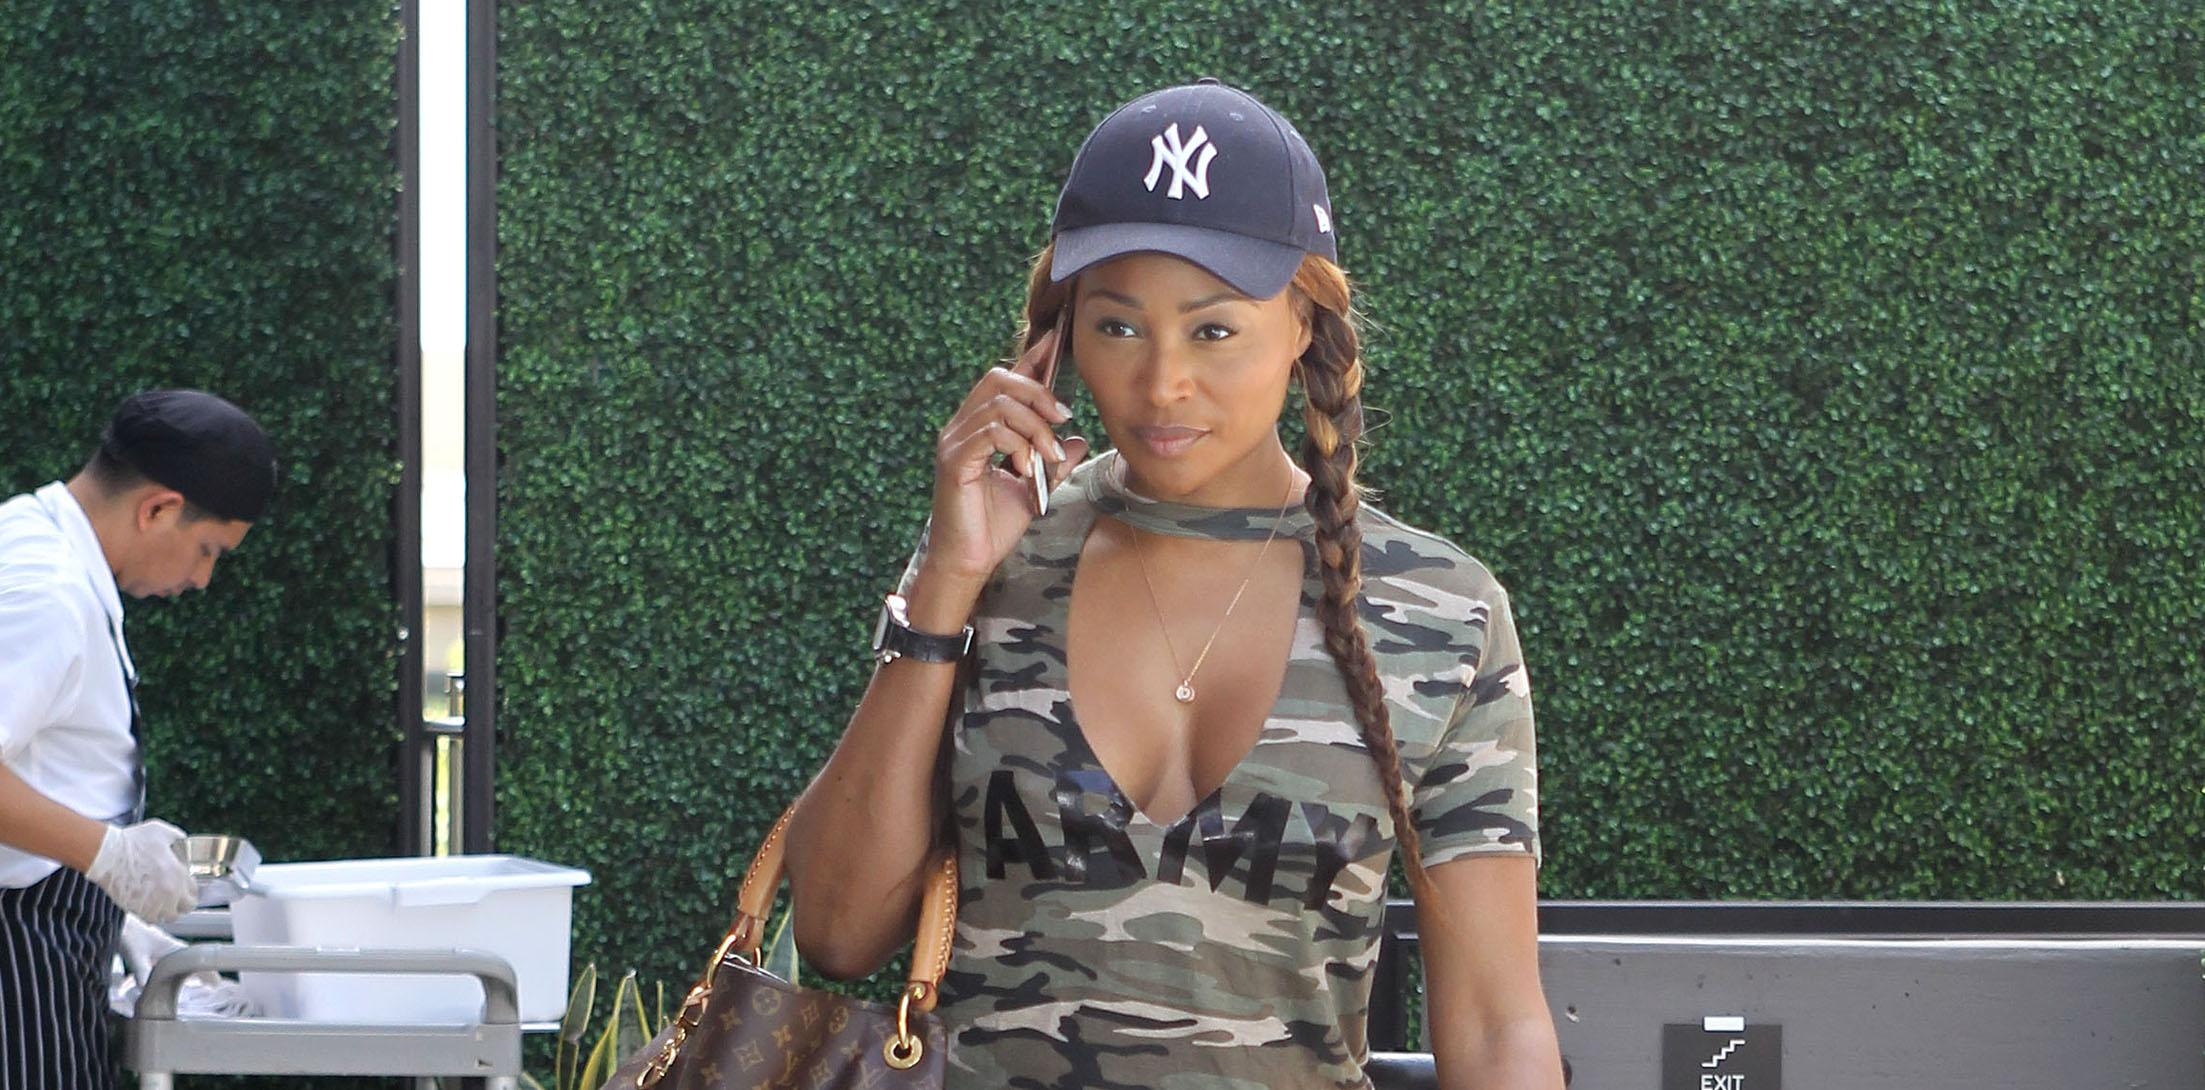 EXCLUSIVE: Real Housewife of Atlanta Star Cynthia Bailey at the pool